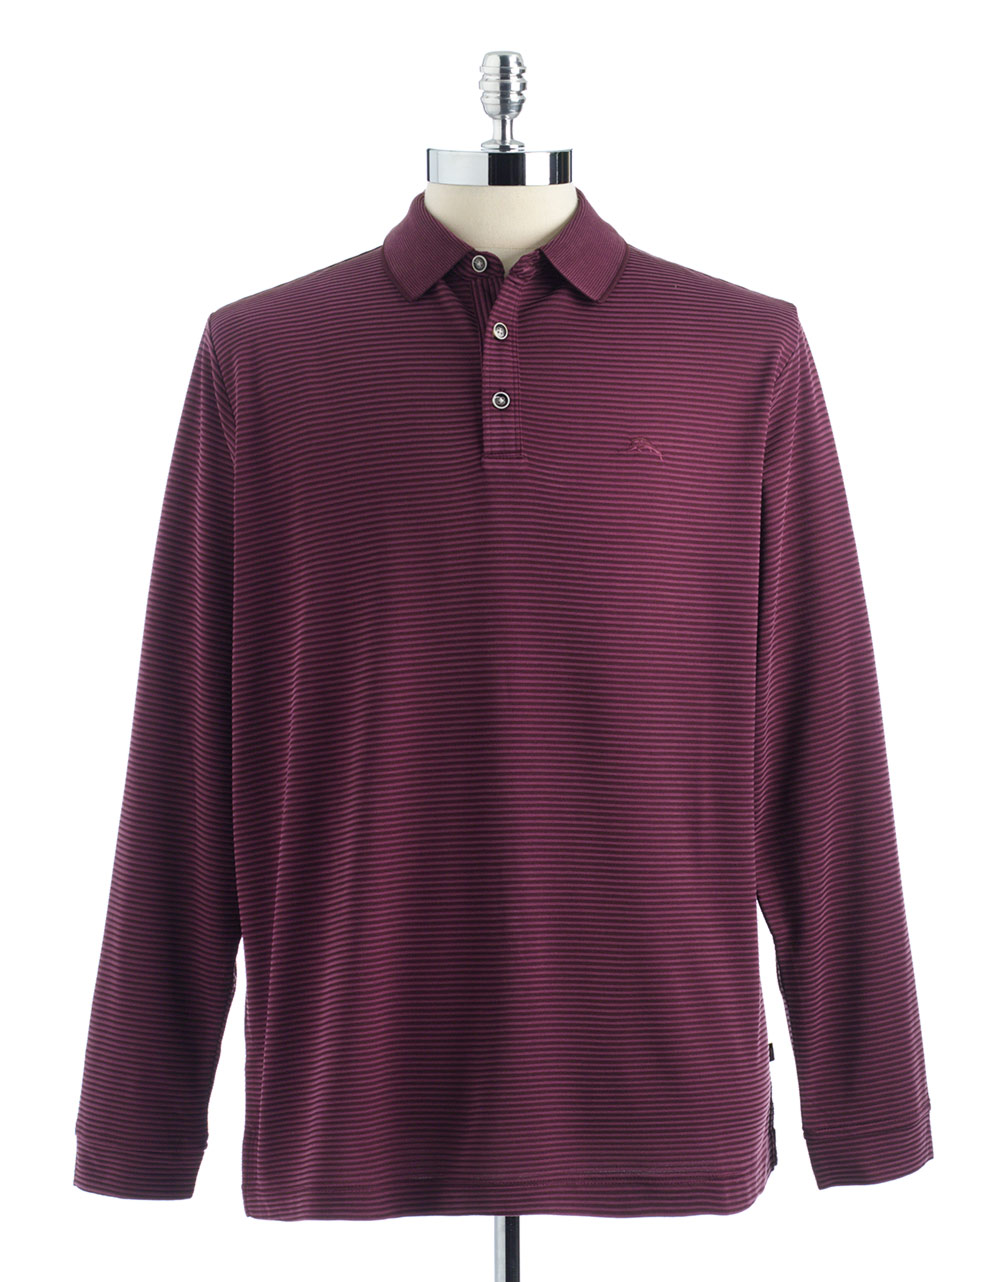 Tommy bahama tommy bahama superfecta longsleeved polo for Tommy bahama polo shirts on sale